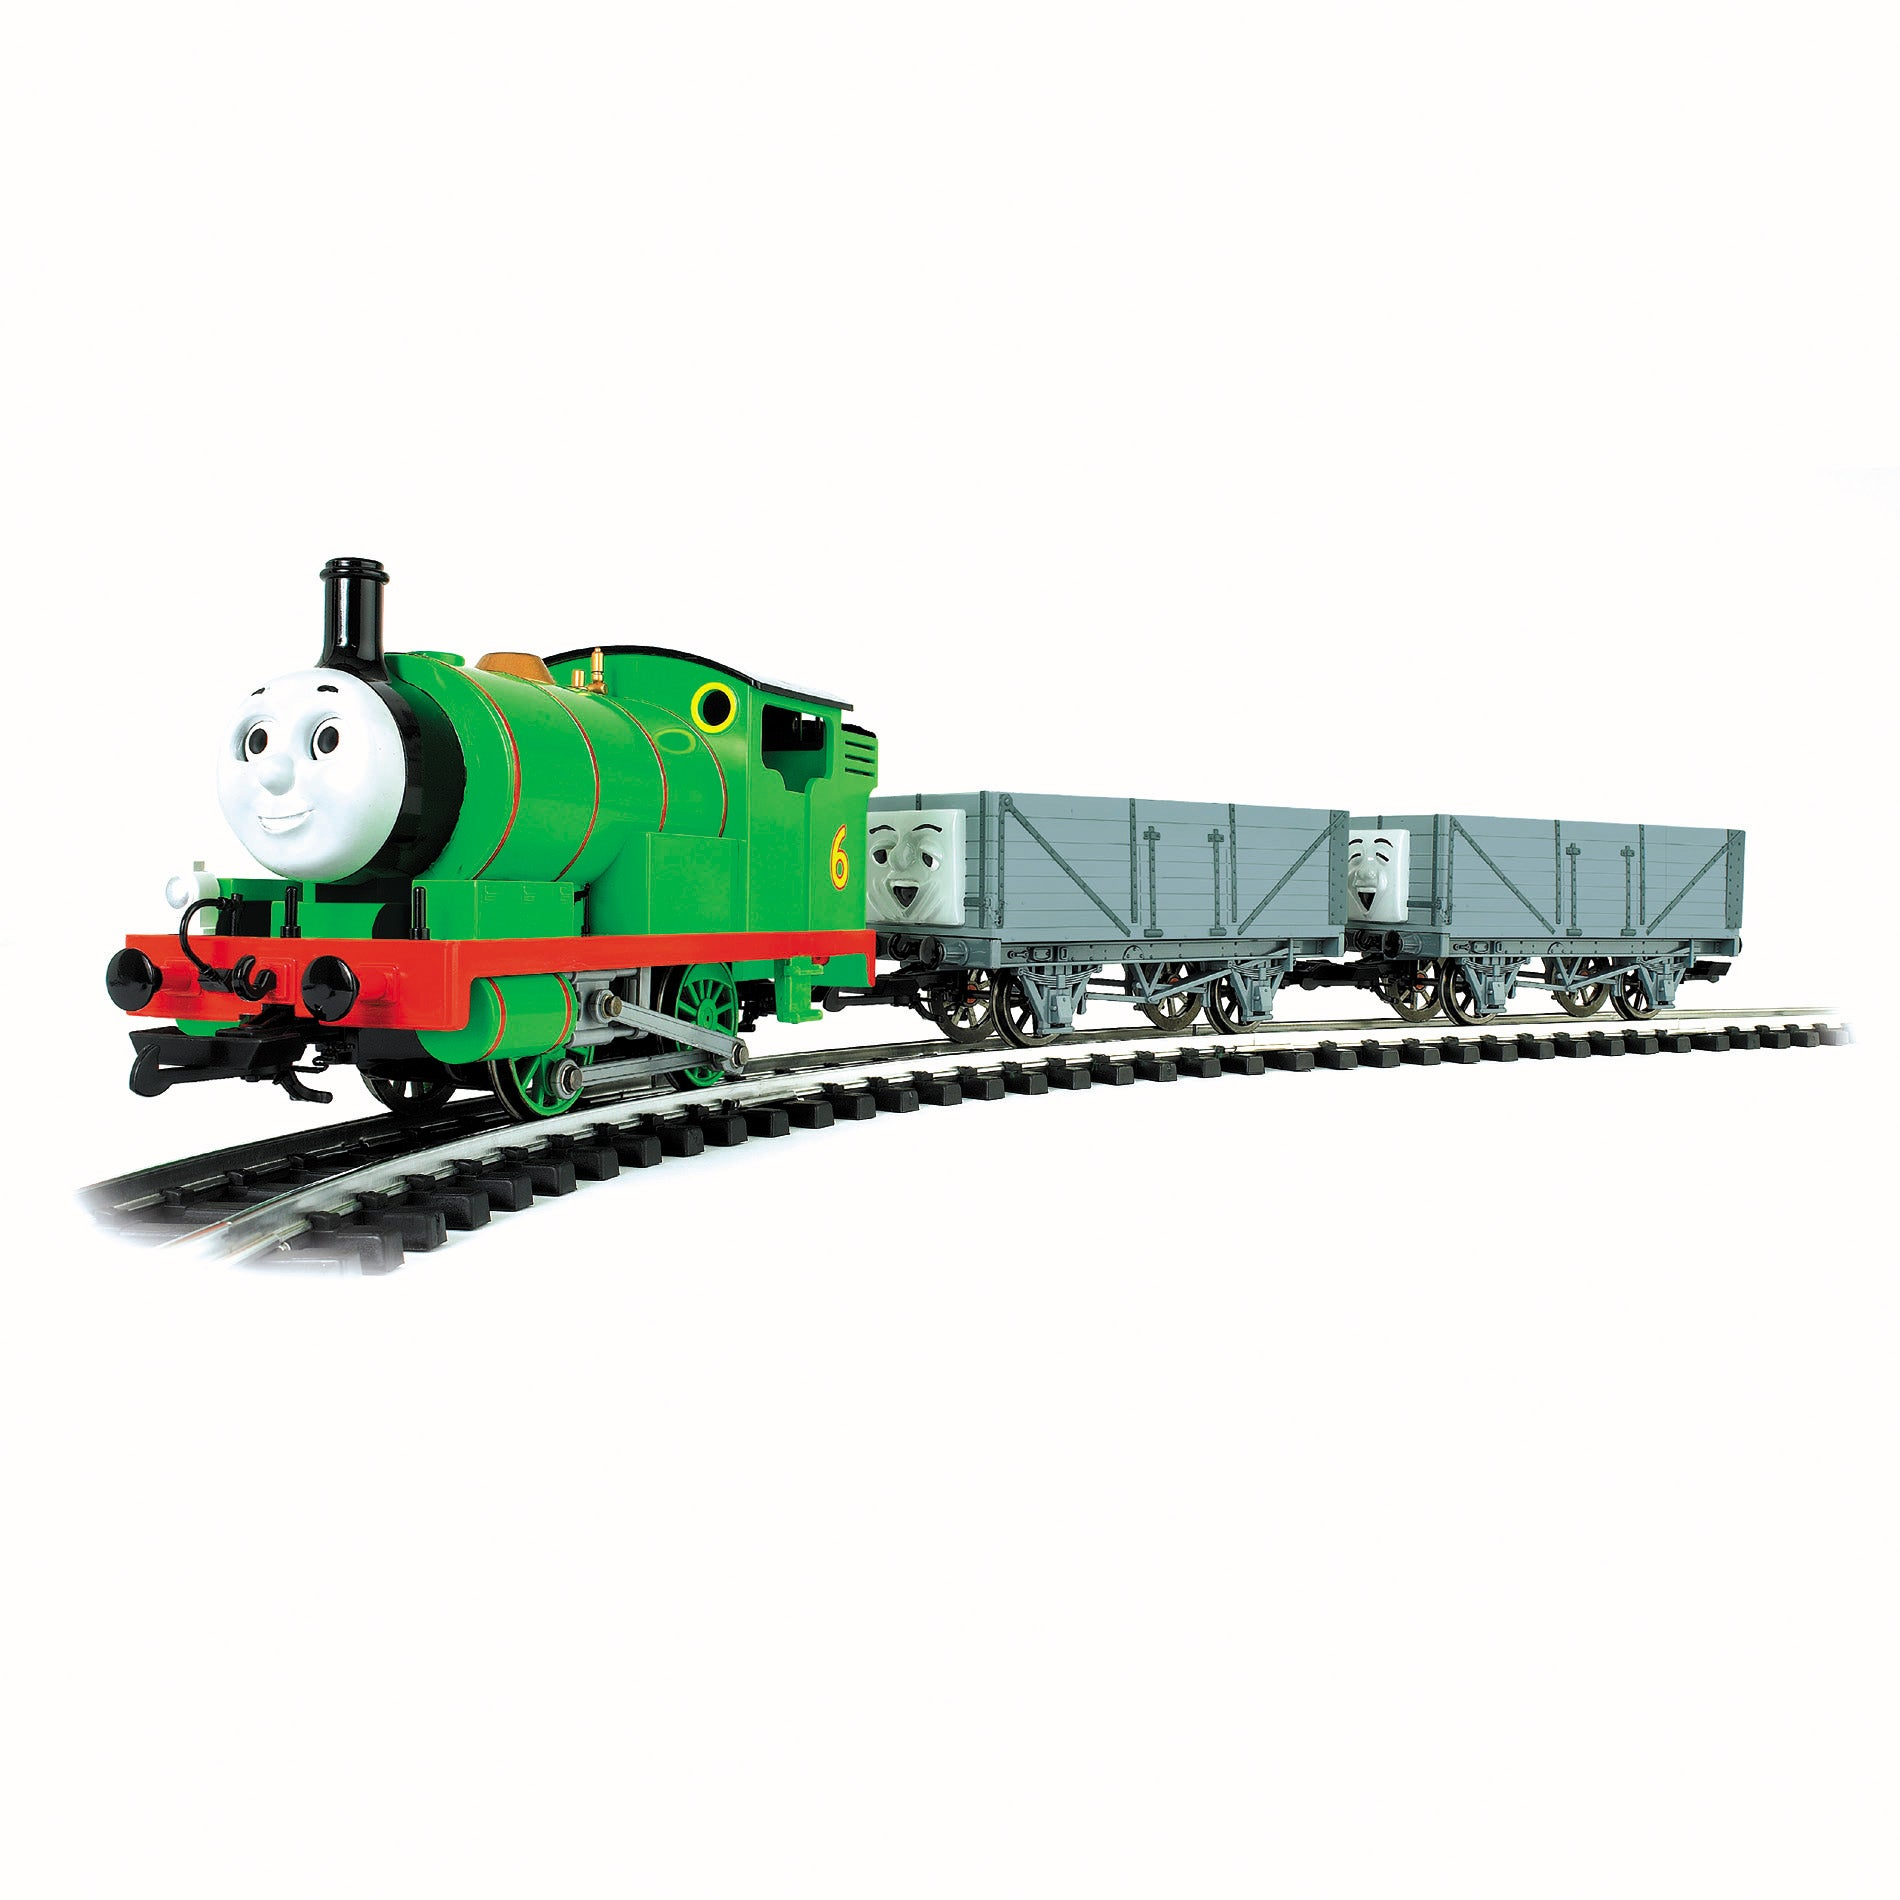 Bachmann g scale thomas and friends percy large train set 13922739